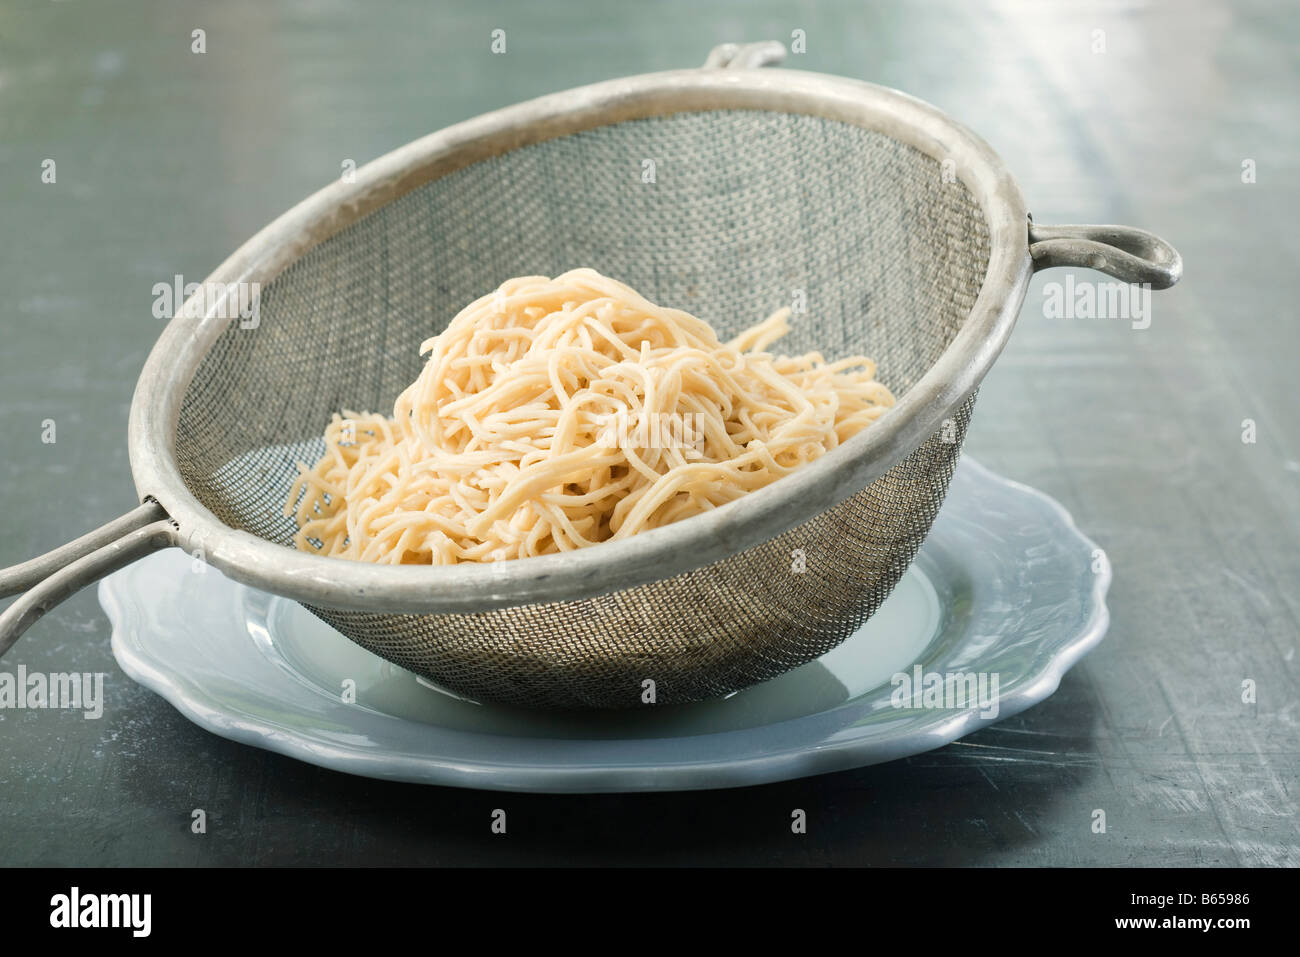 Spaghetti in metal colander resting on plate - Stock Image